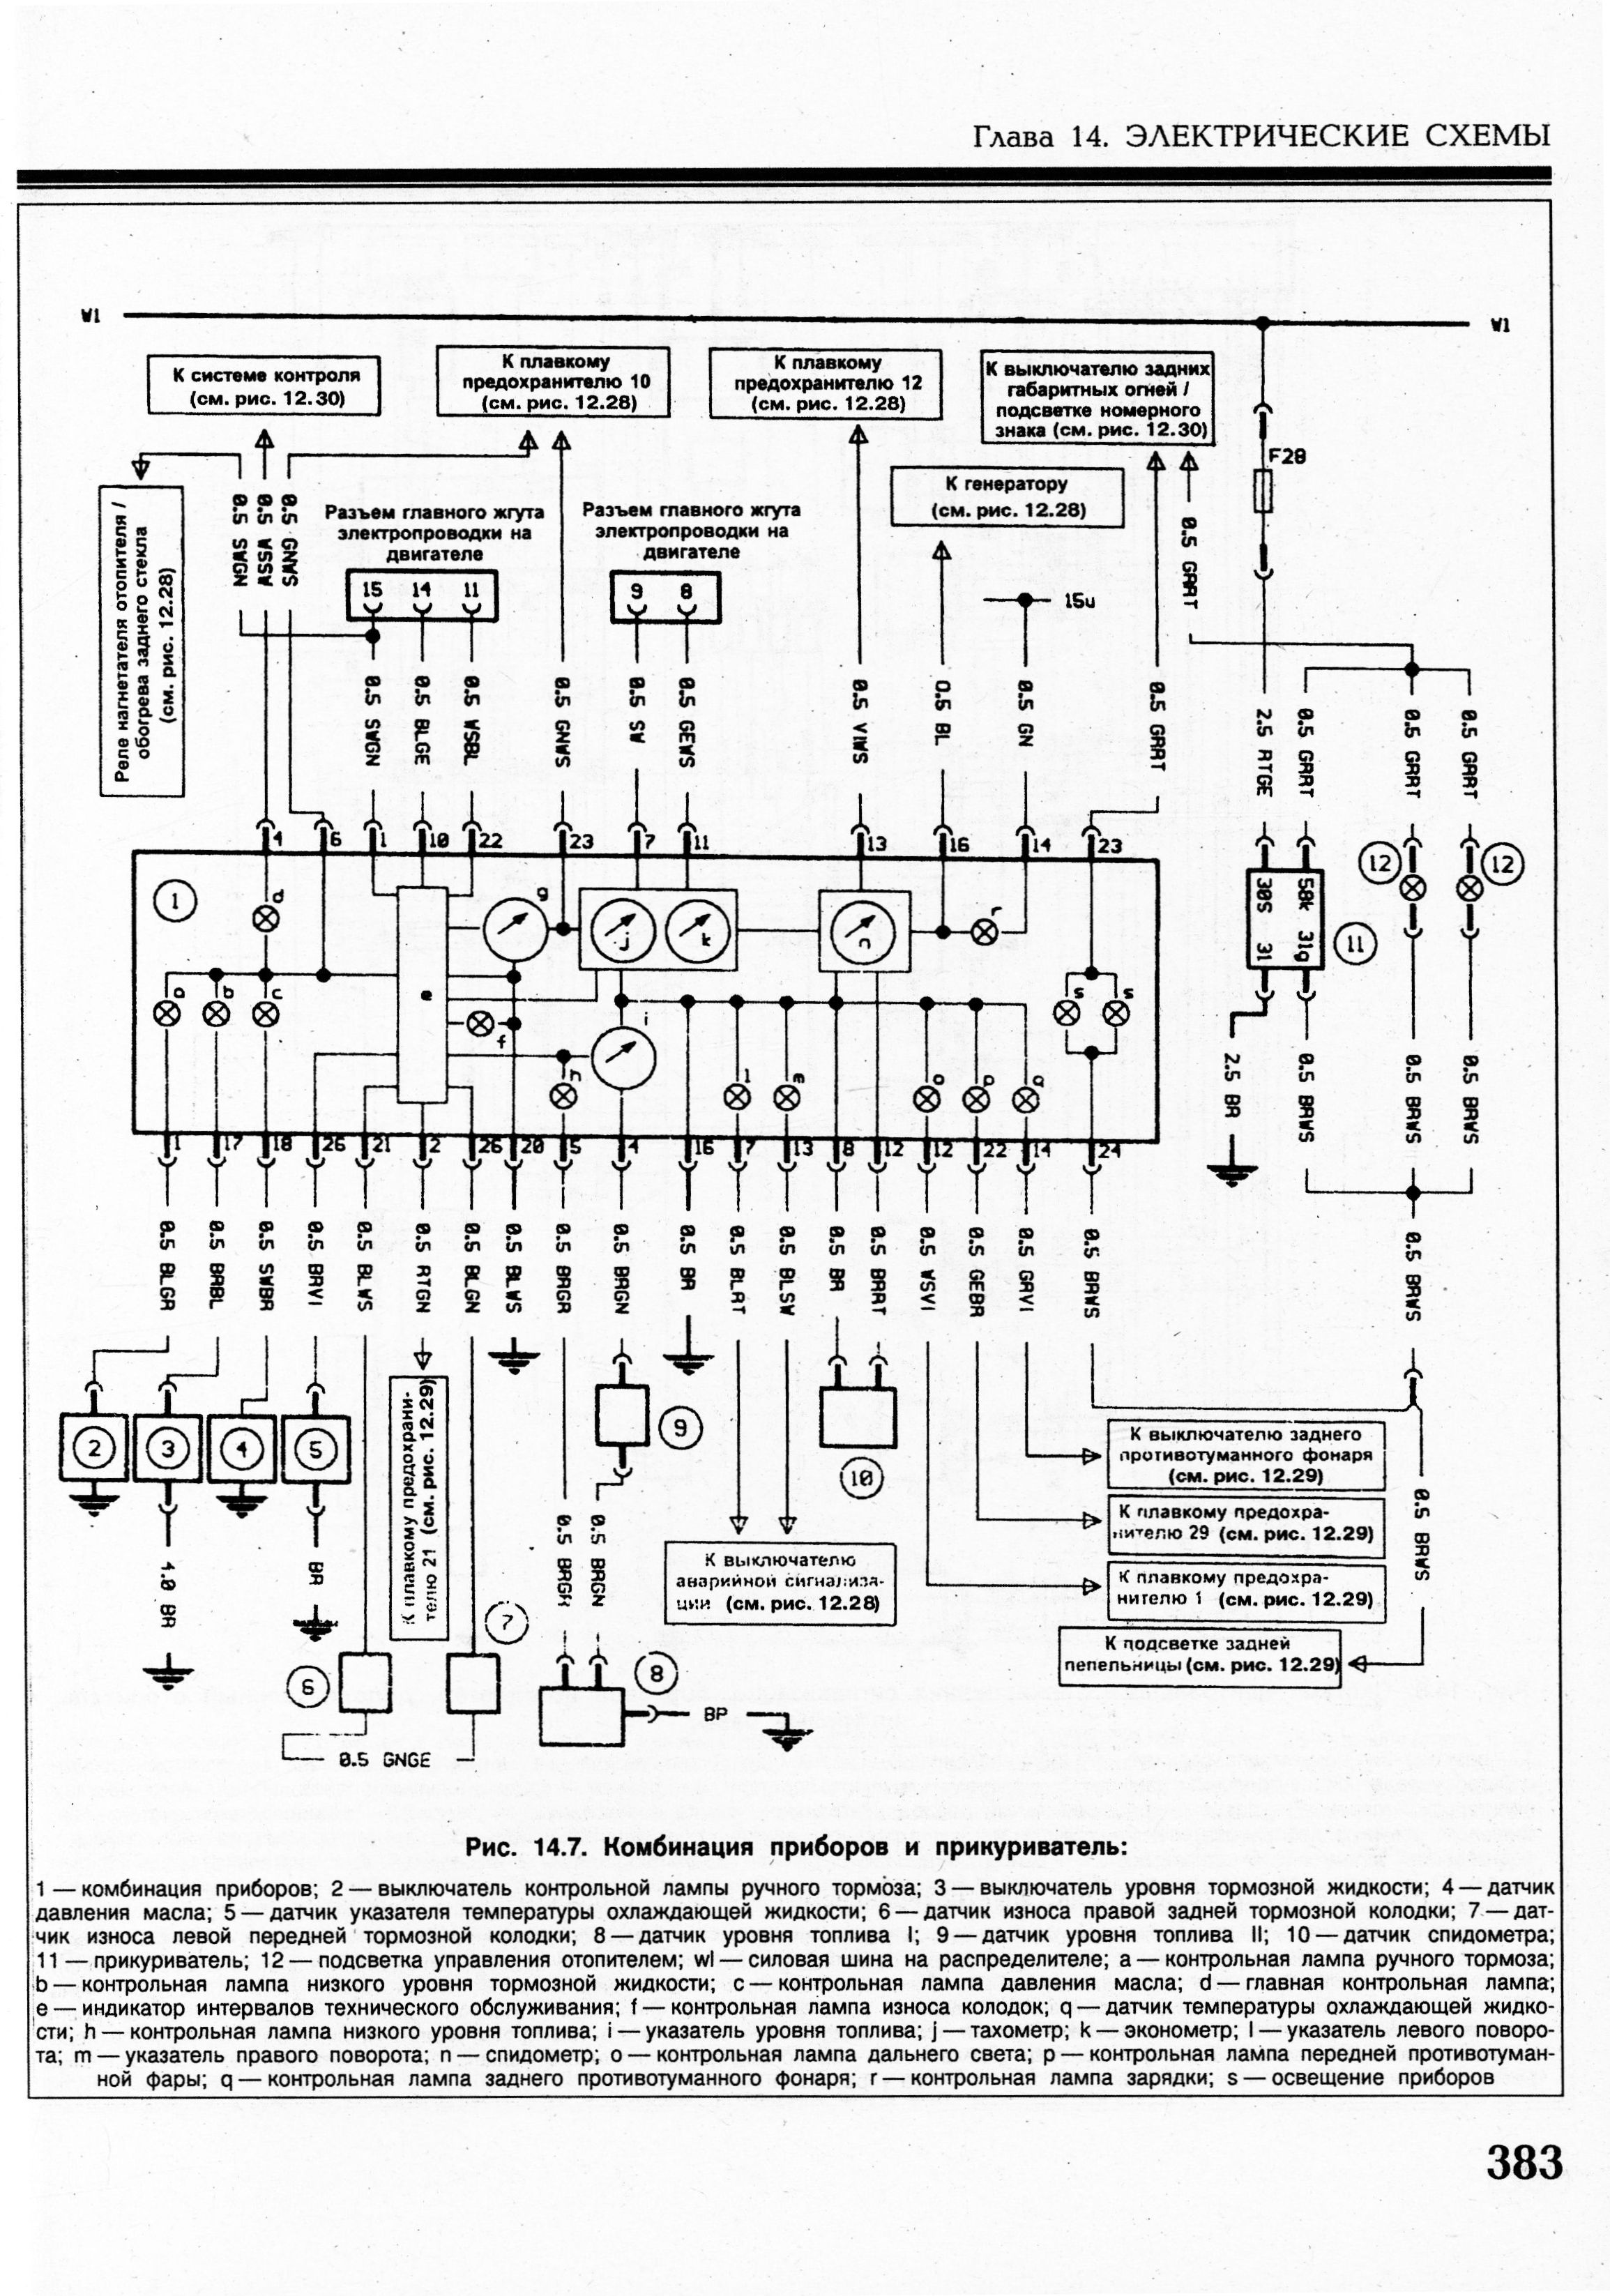 e30 m20 engine wiring diagram html